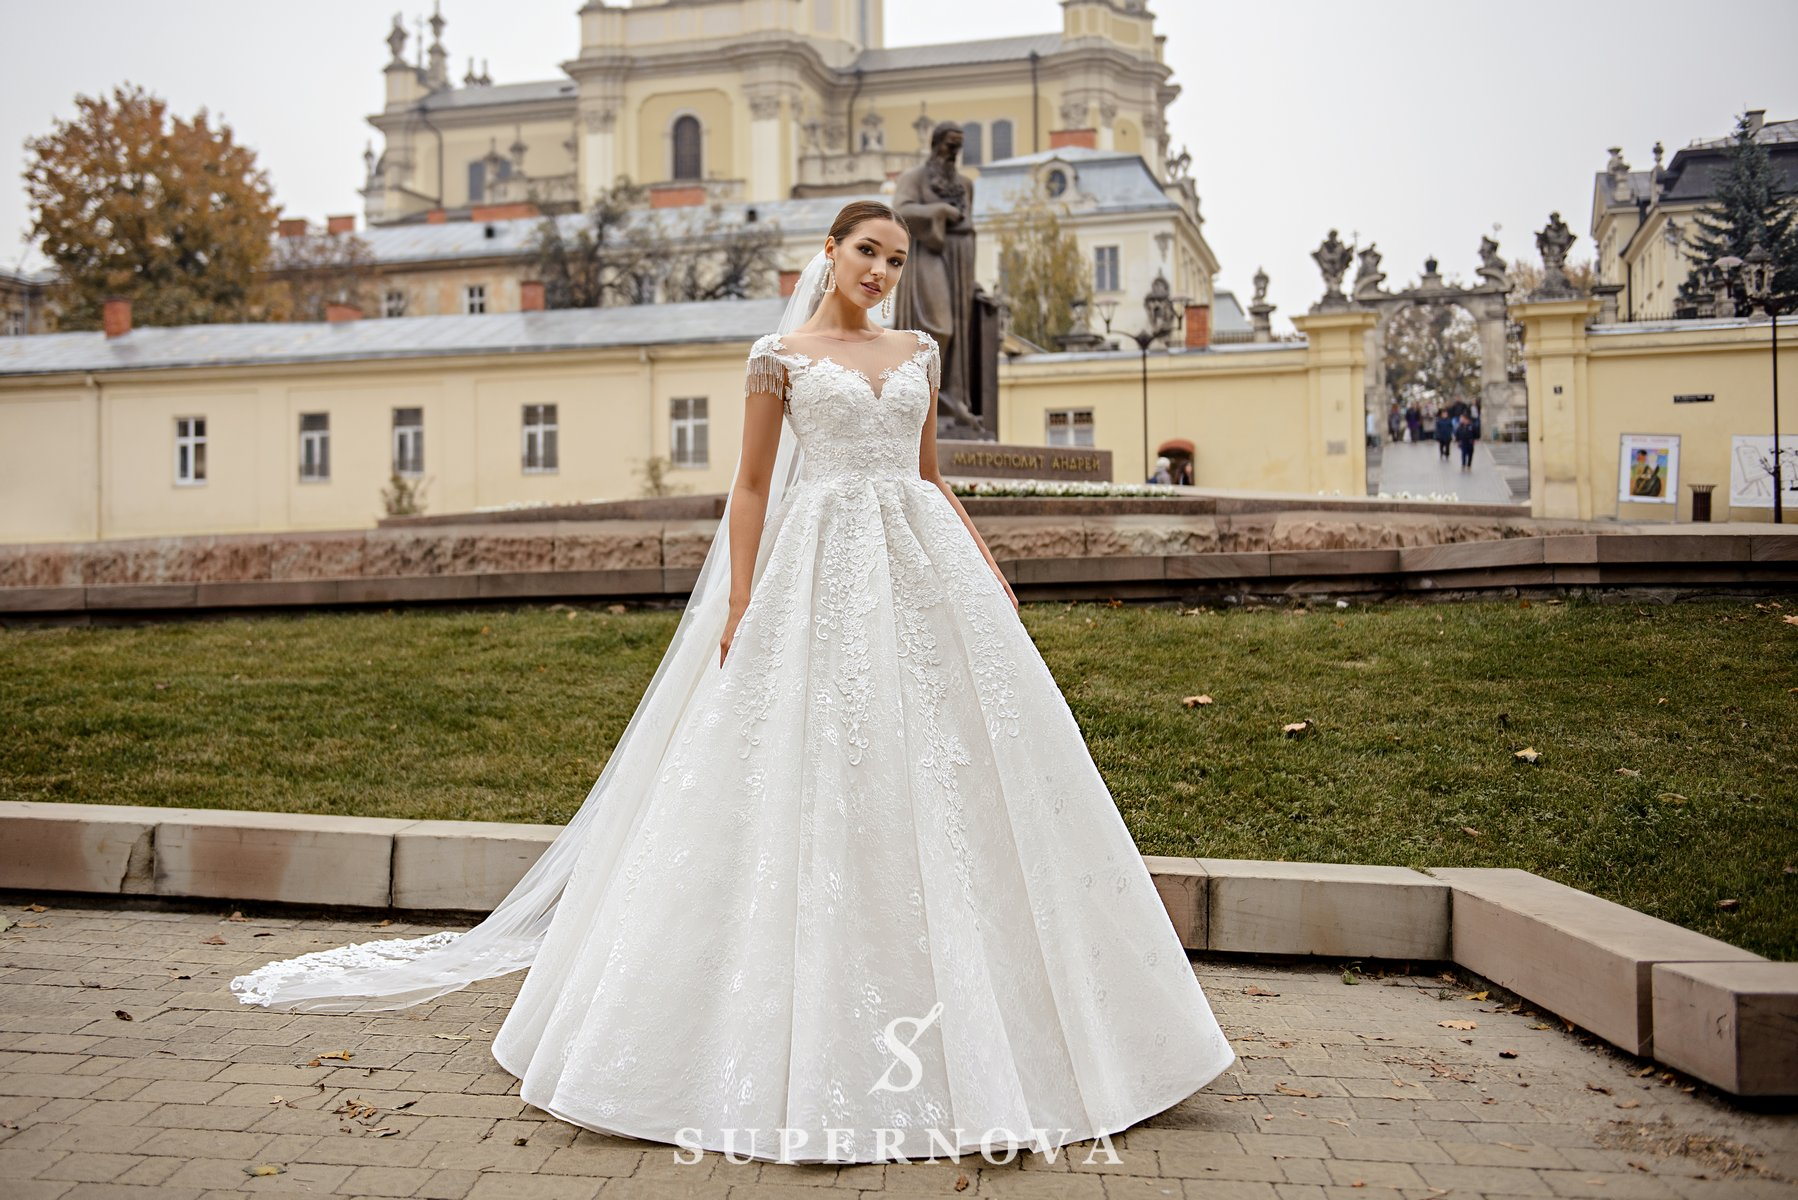 Ivory wedding dress  with a puffy skirt on wholesale from SuperNova-1